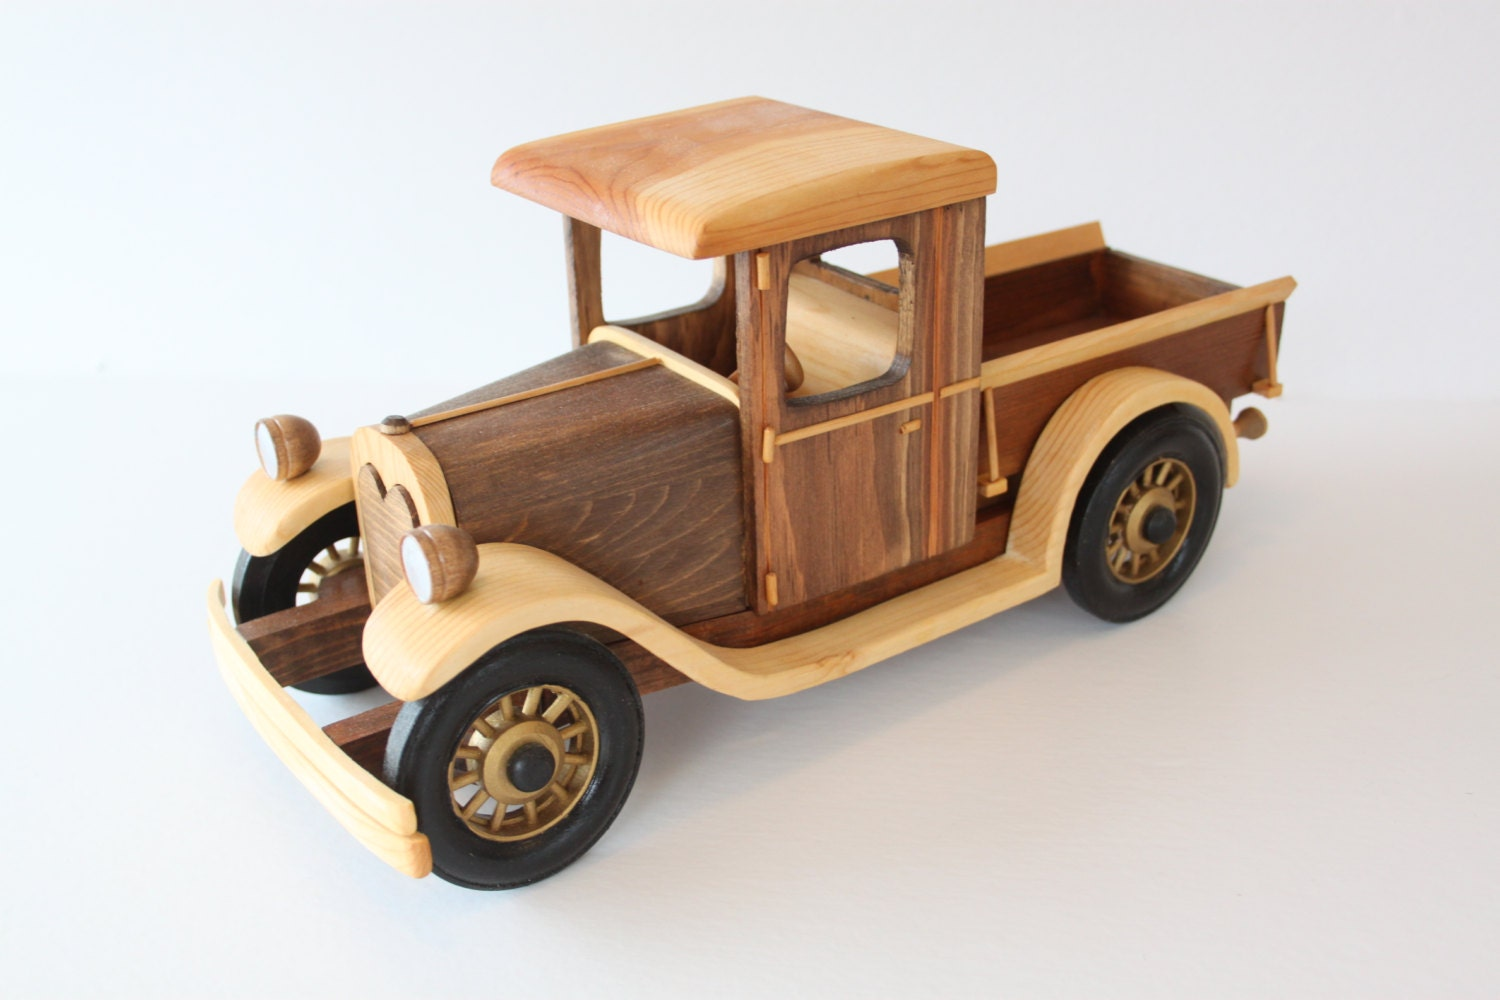 Making A Wooden Toy Truck Wooden Furniture Plans